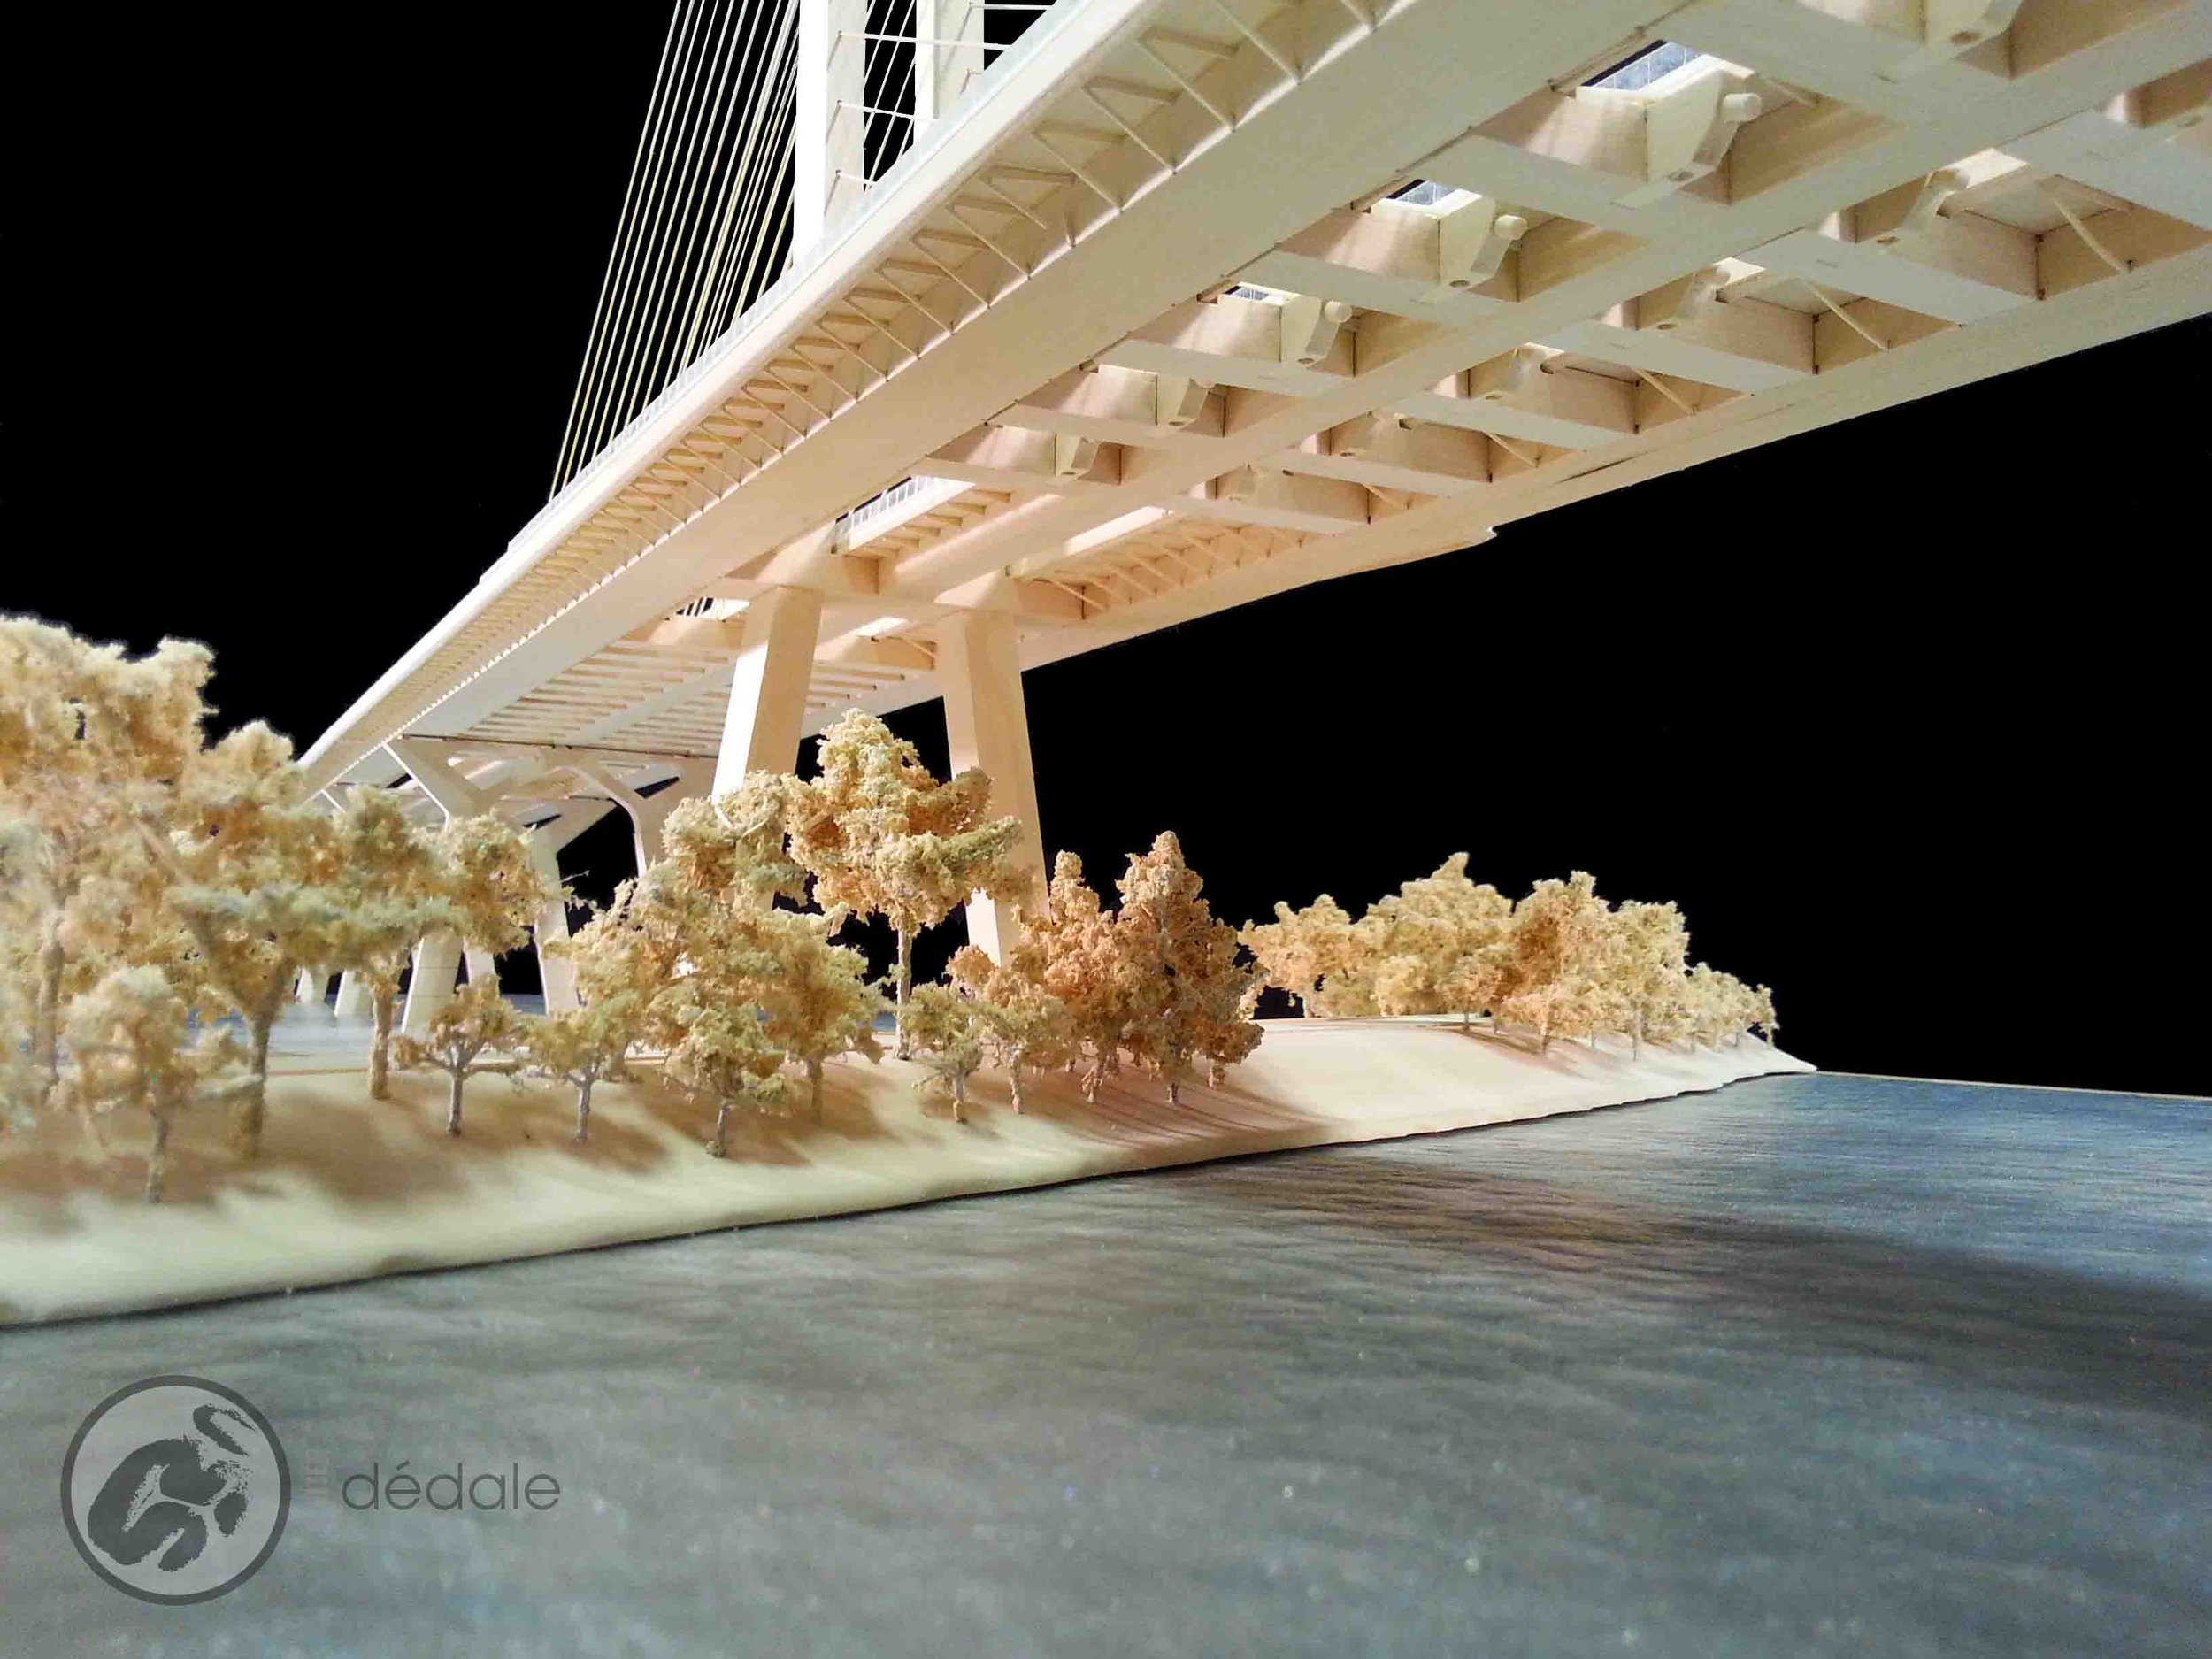 Champlain bridge project architectural models